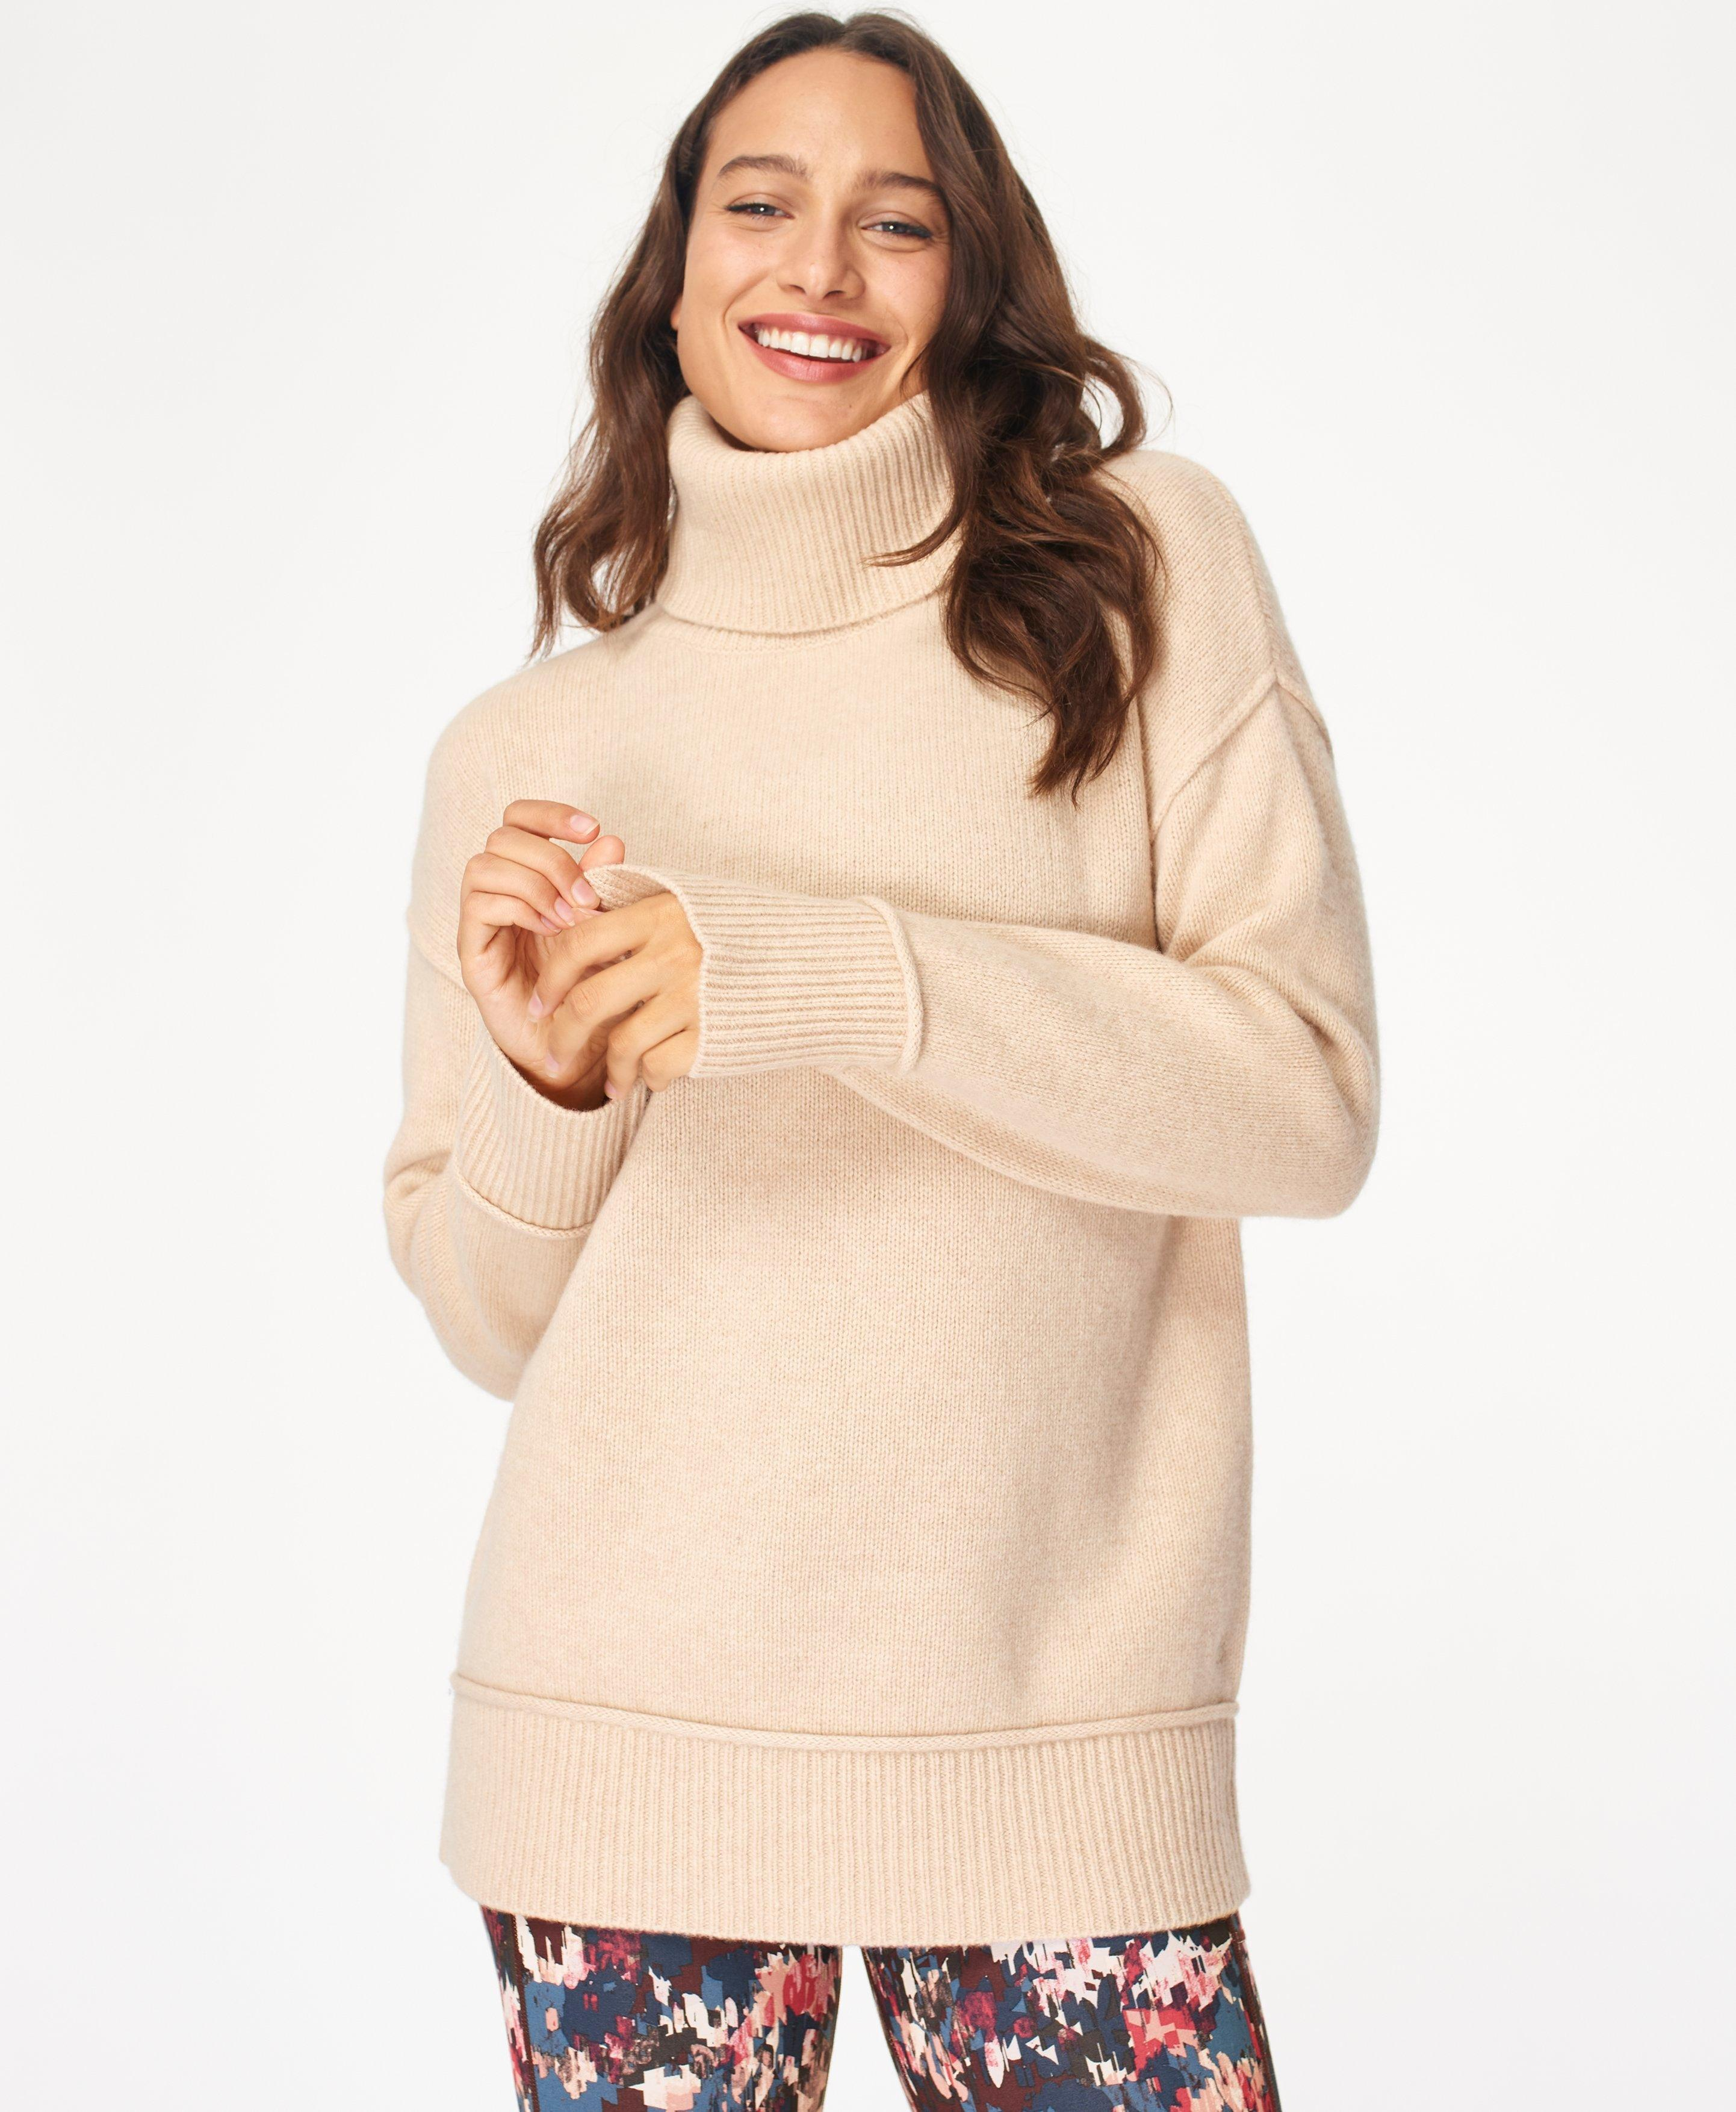 Elevate Mountain Wool Turtleneck Jumper, Lily White | Sweaty Betty